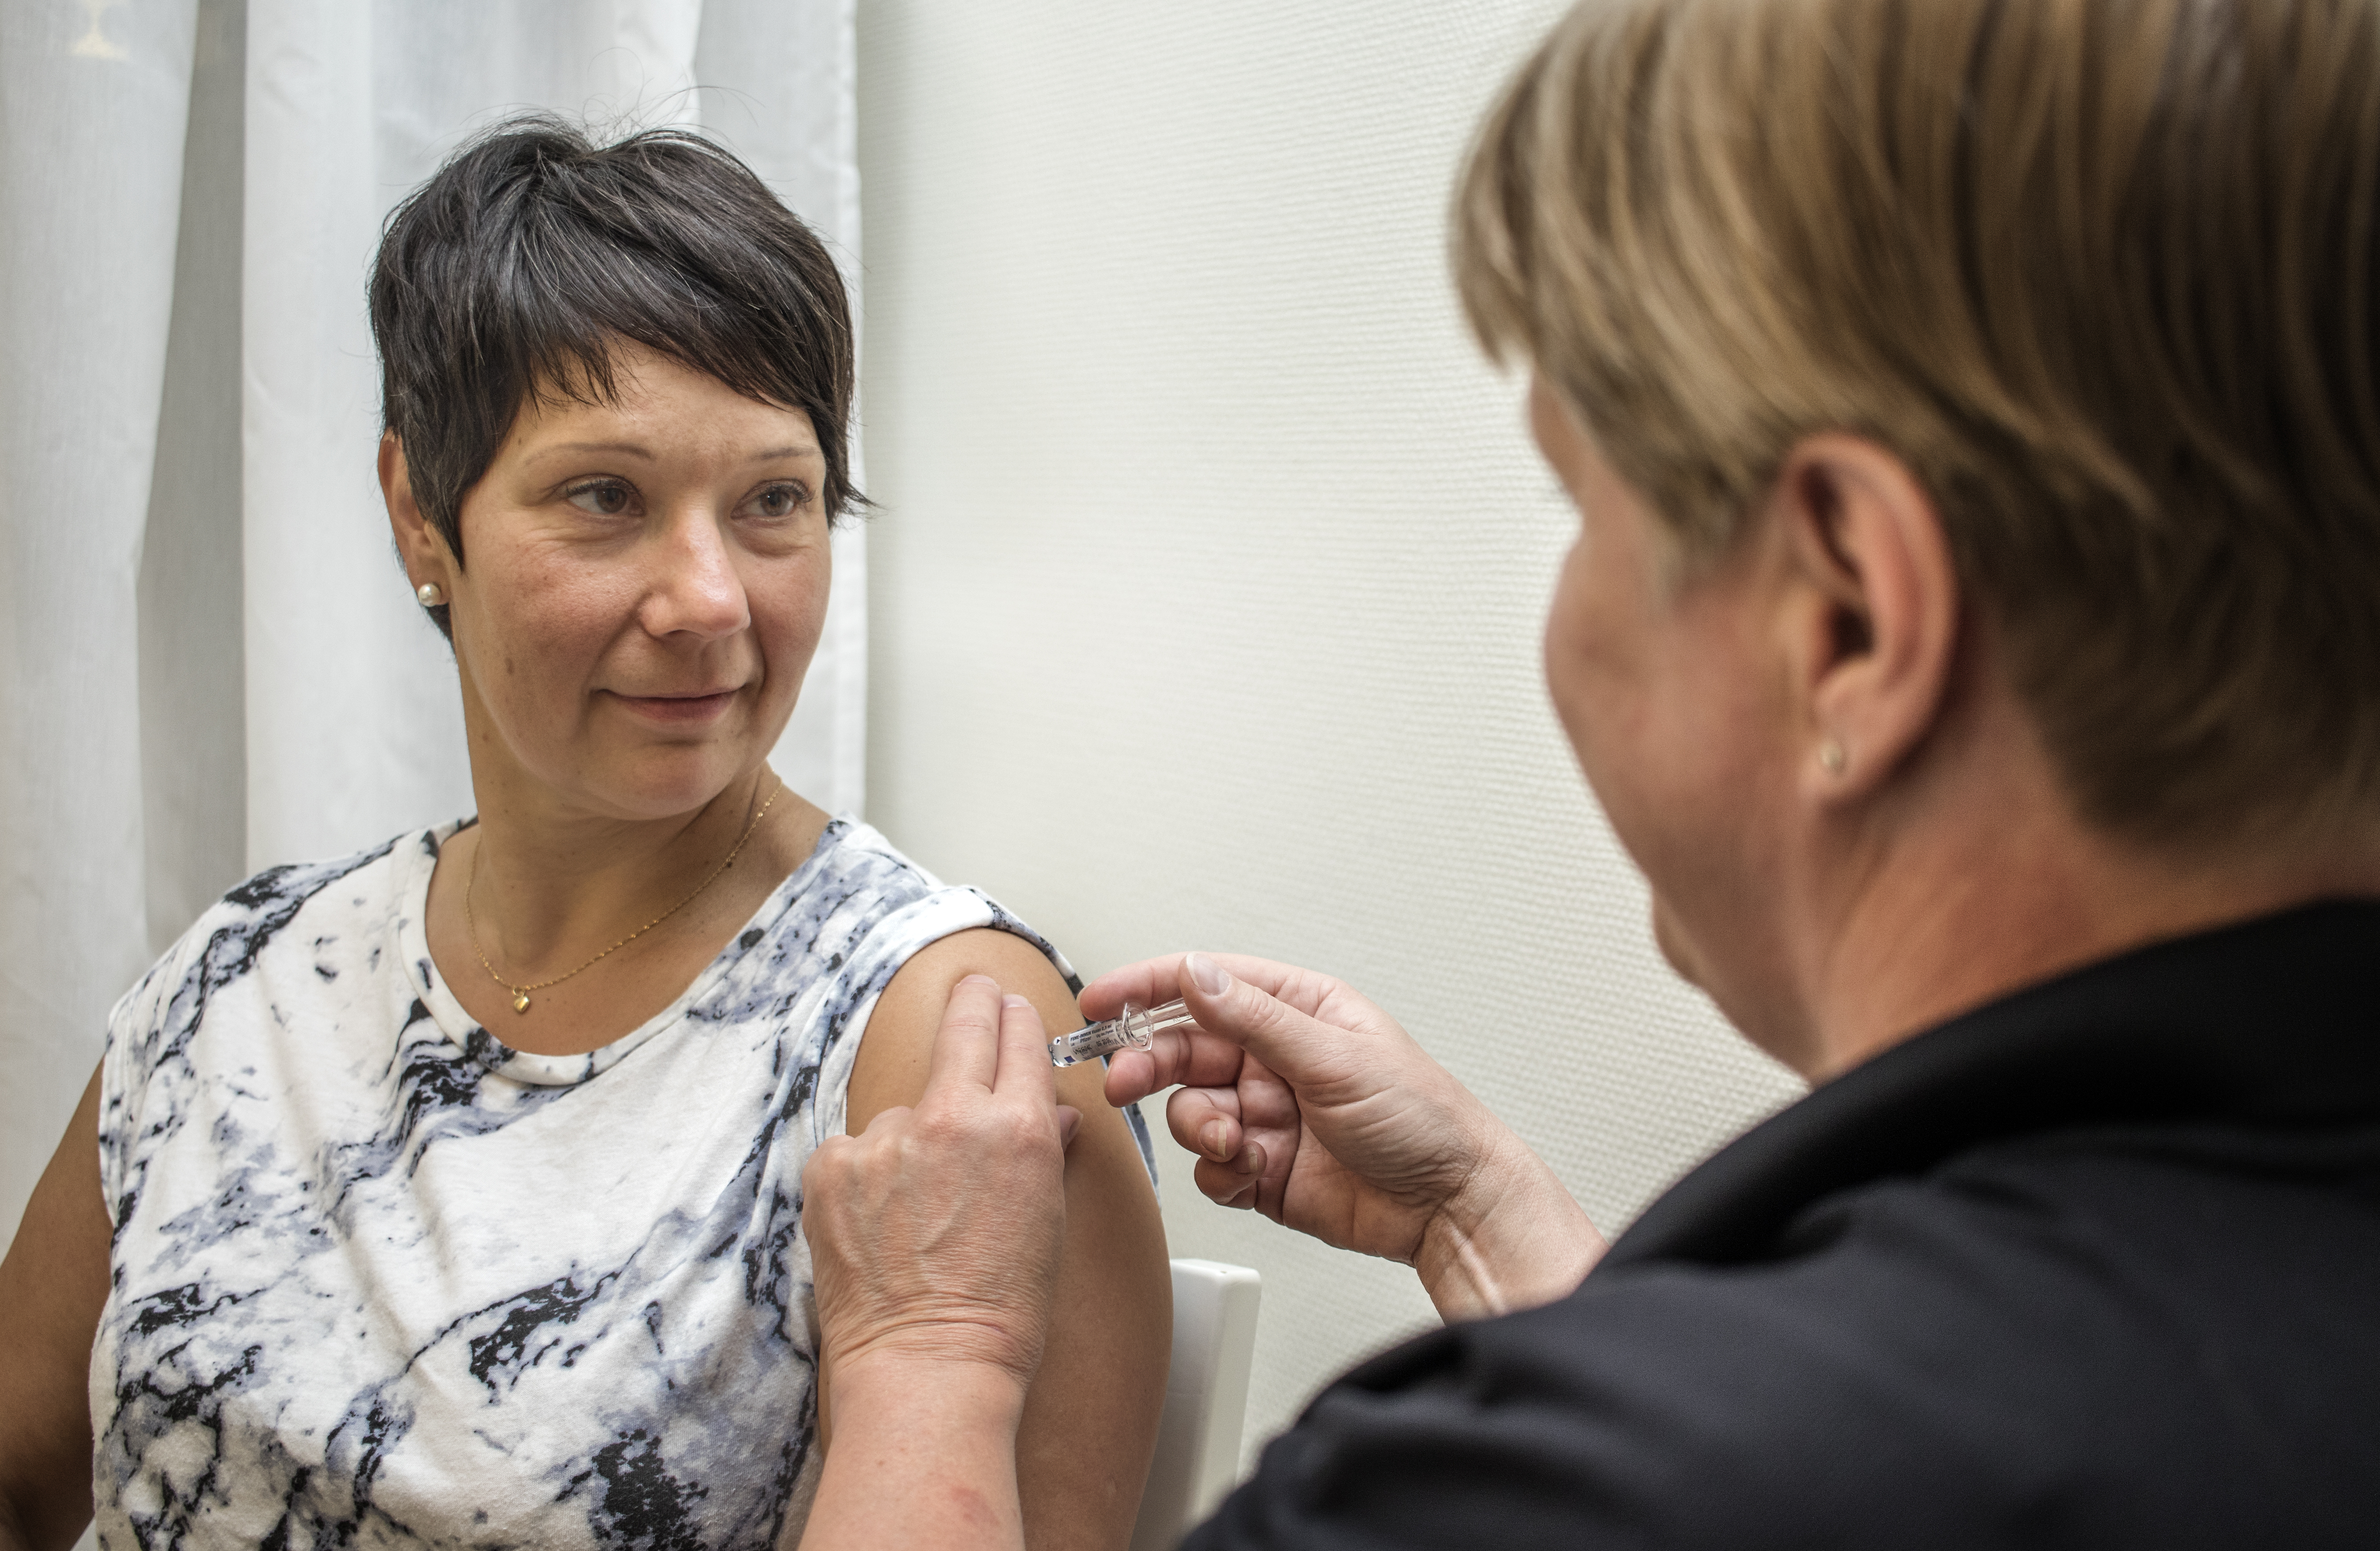 En person får en vaccination